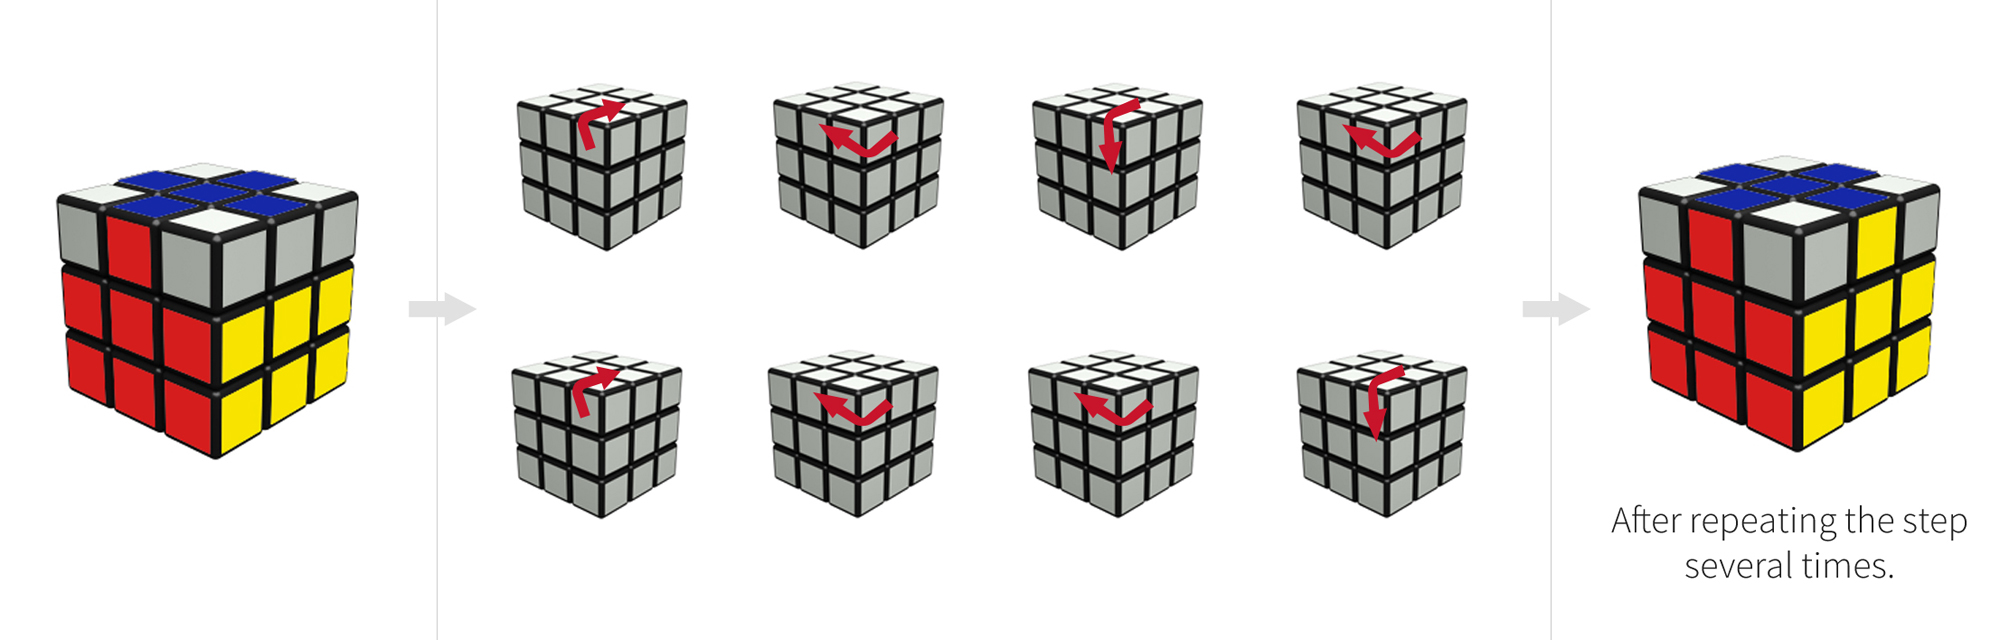 How to Solve a Rubik's Cube - Pictures for Beginners!